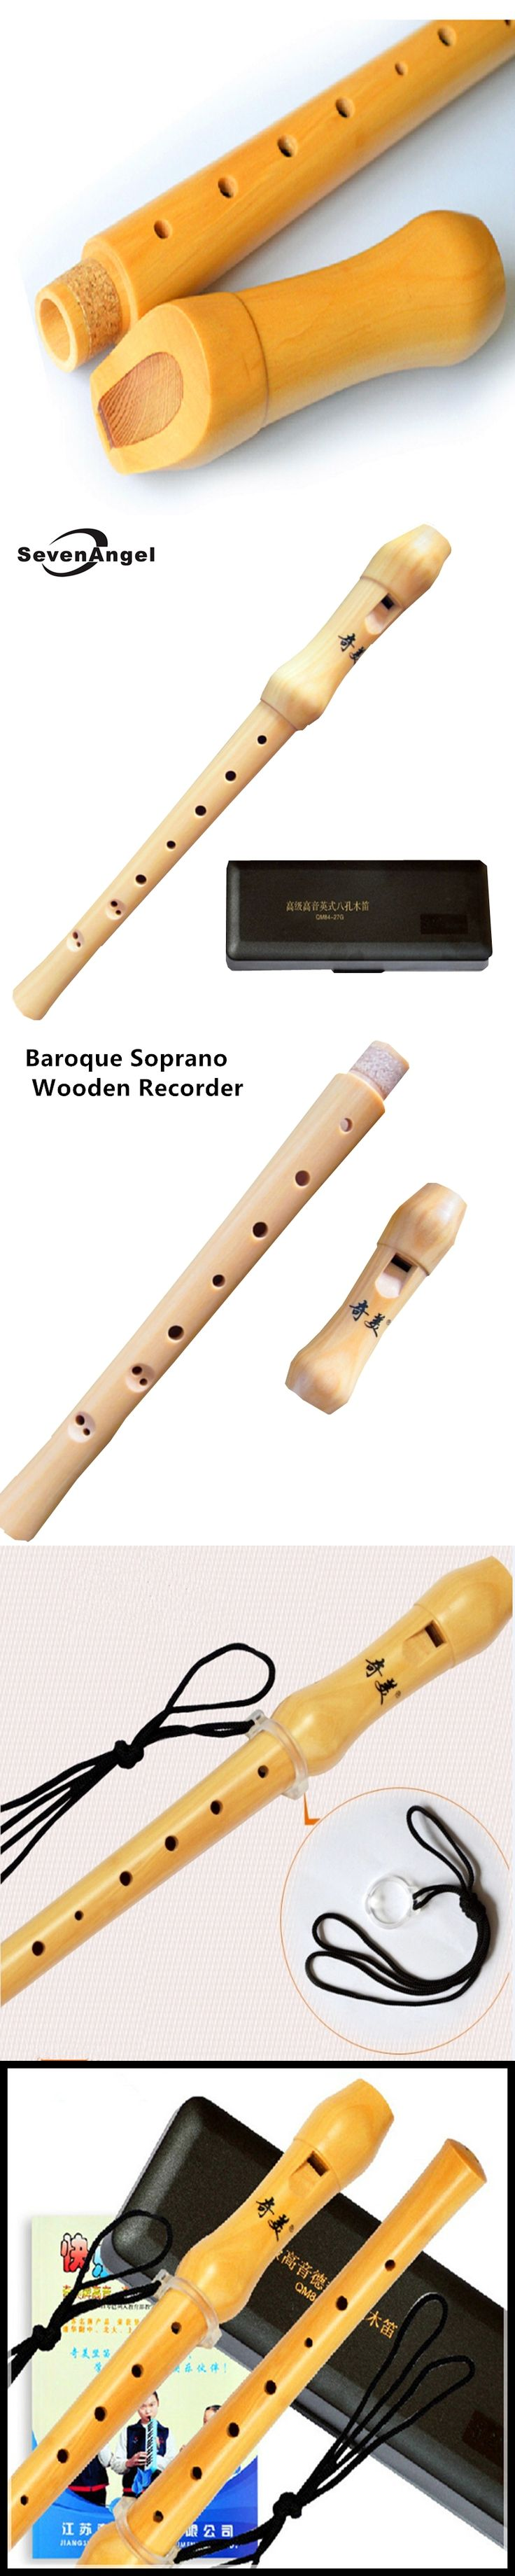 Wooden Flute High-pitched German-style 8 hole Clarinet Flute C Key Chinese Vertical Flute Wood Musical Instruments Wooden Flute